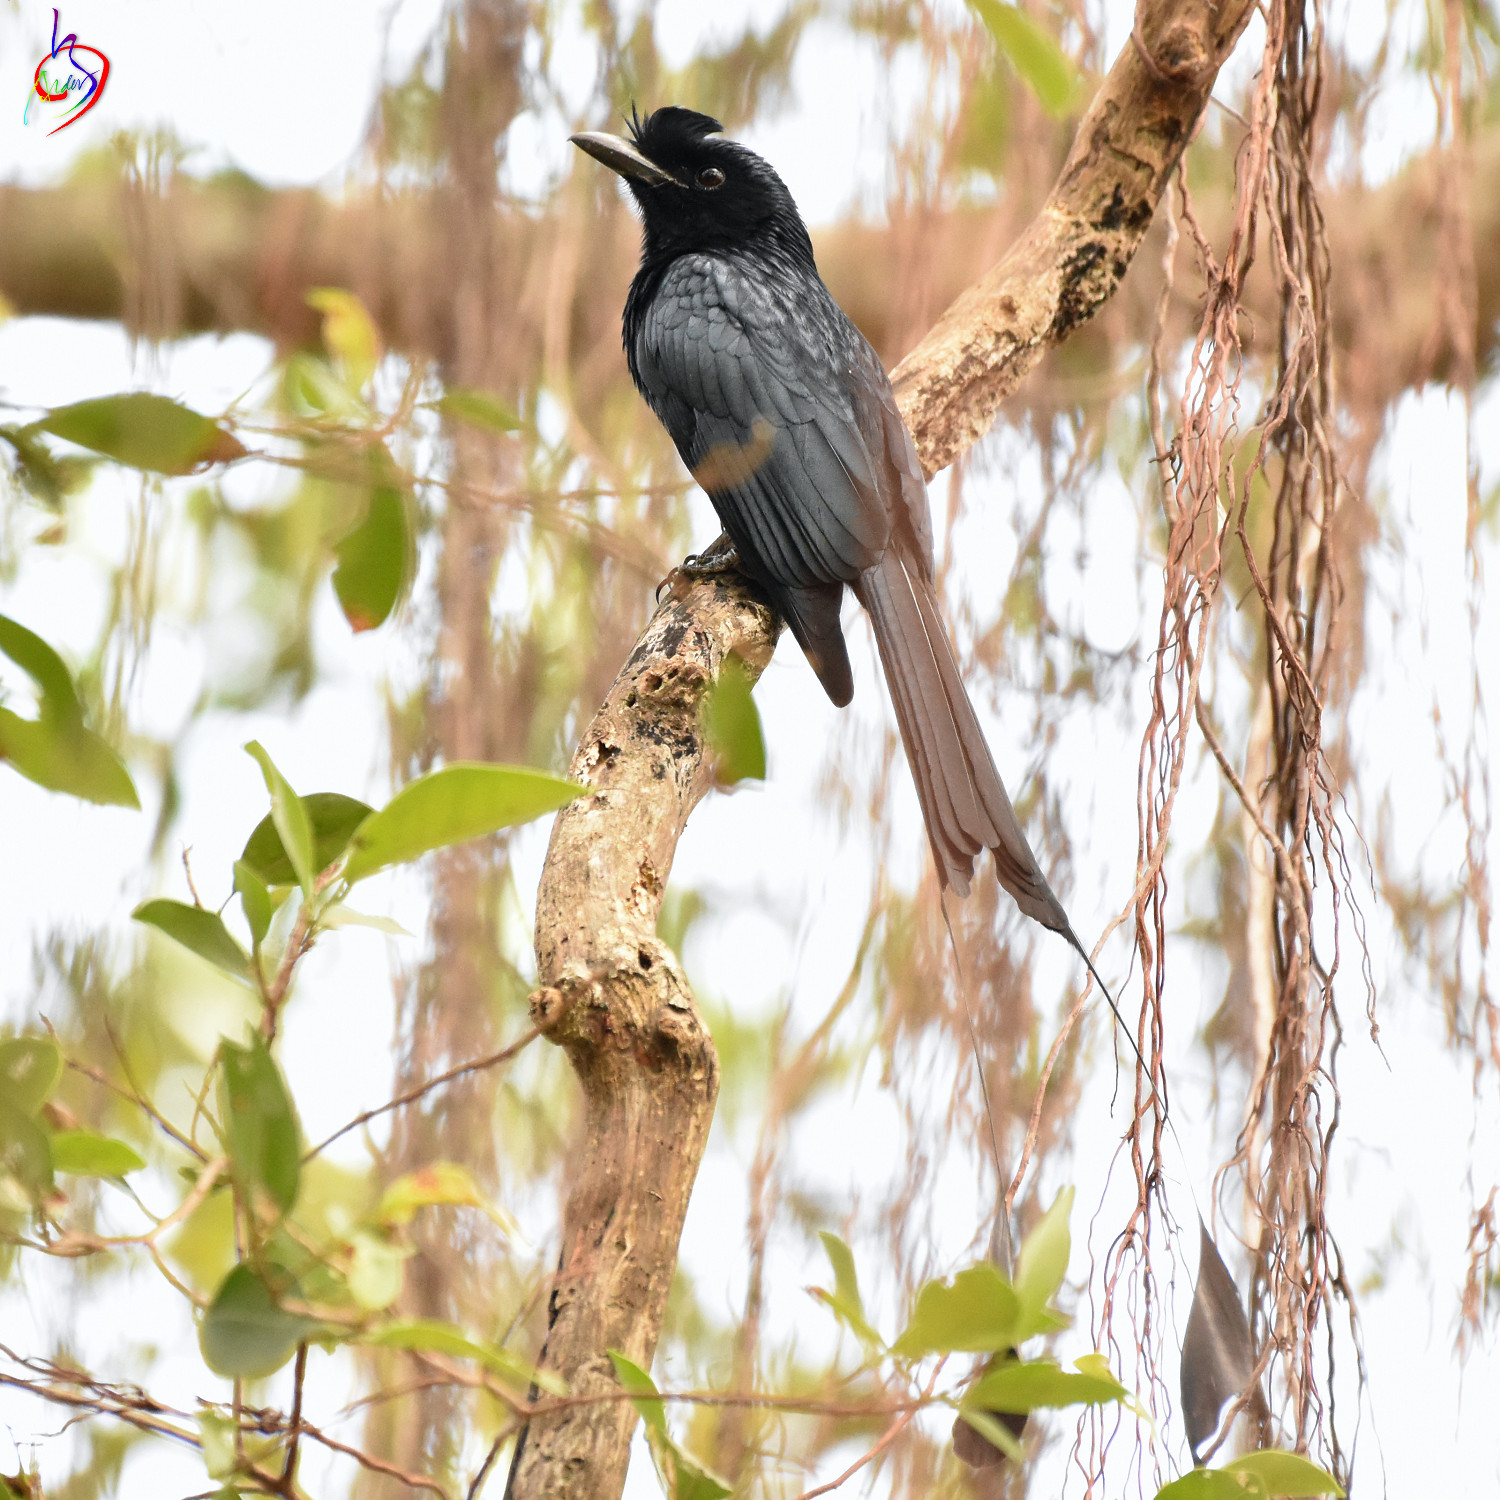 Greater_Racket-tailed_Drongo_3626